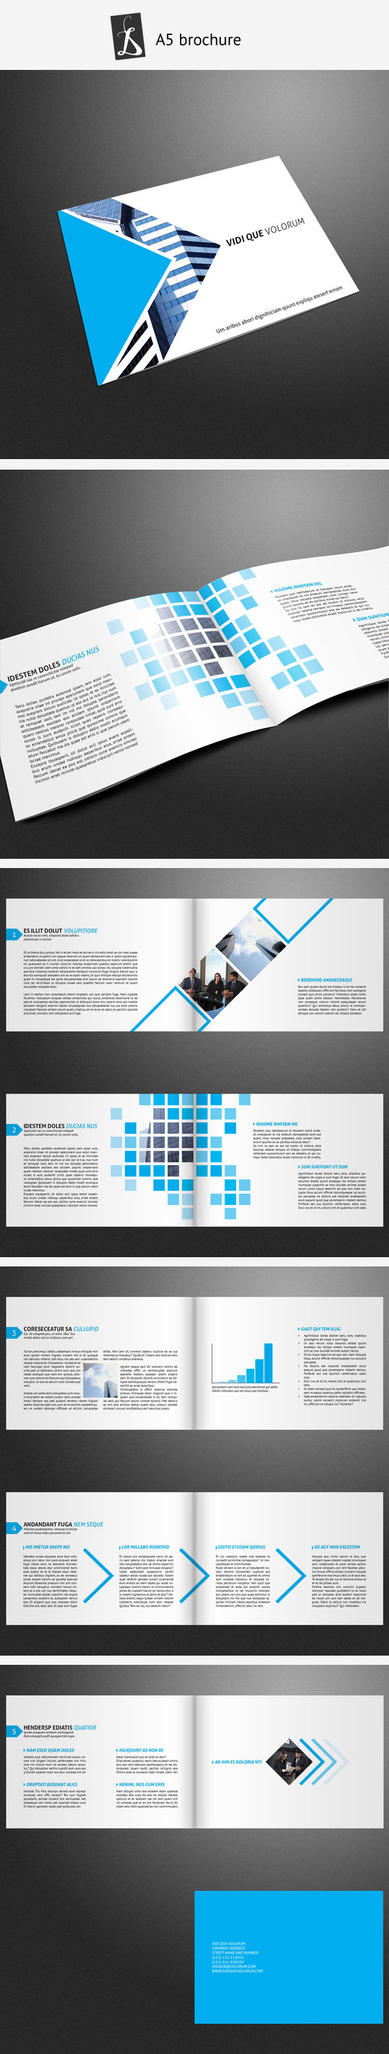 A5 Brochure 7 by demorfoza